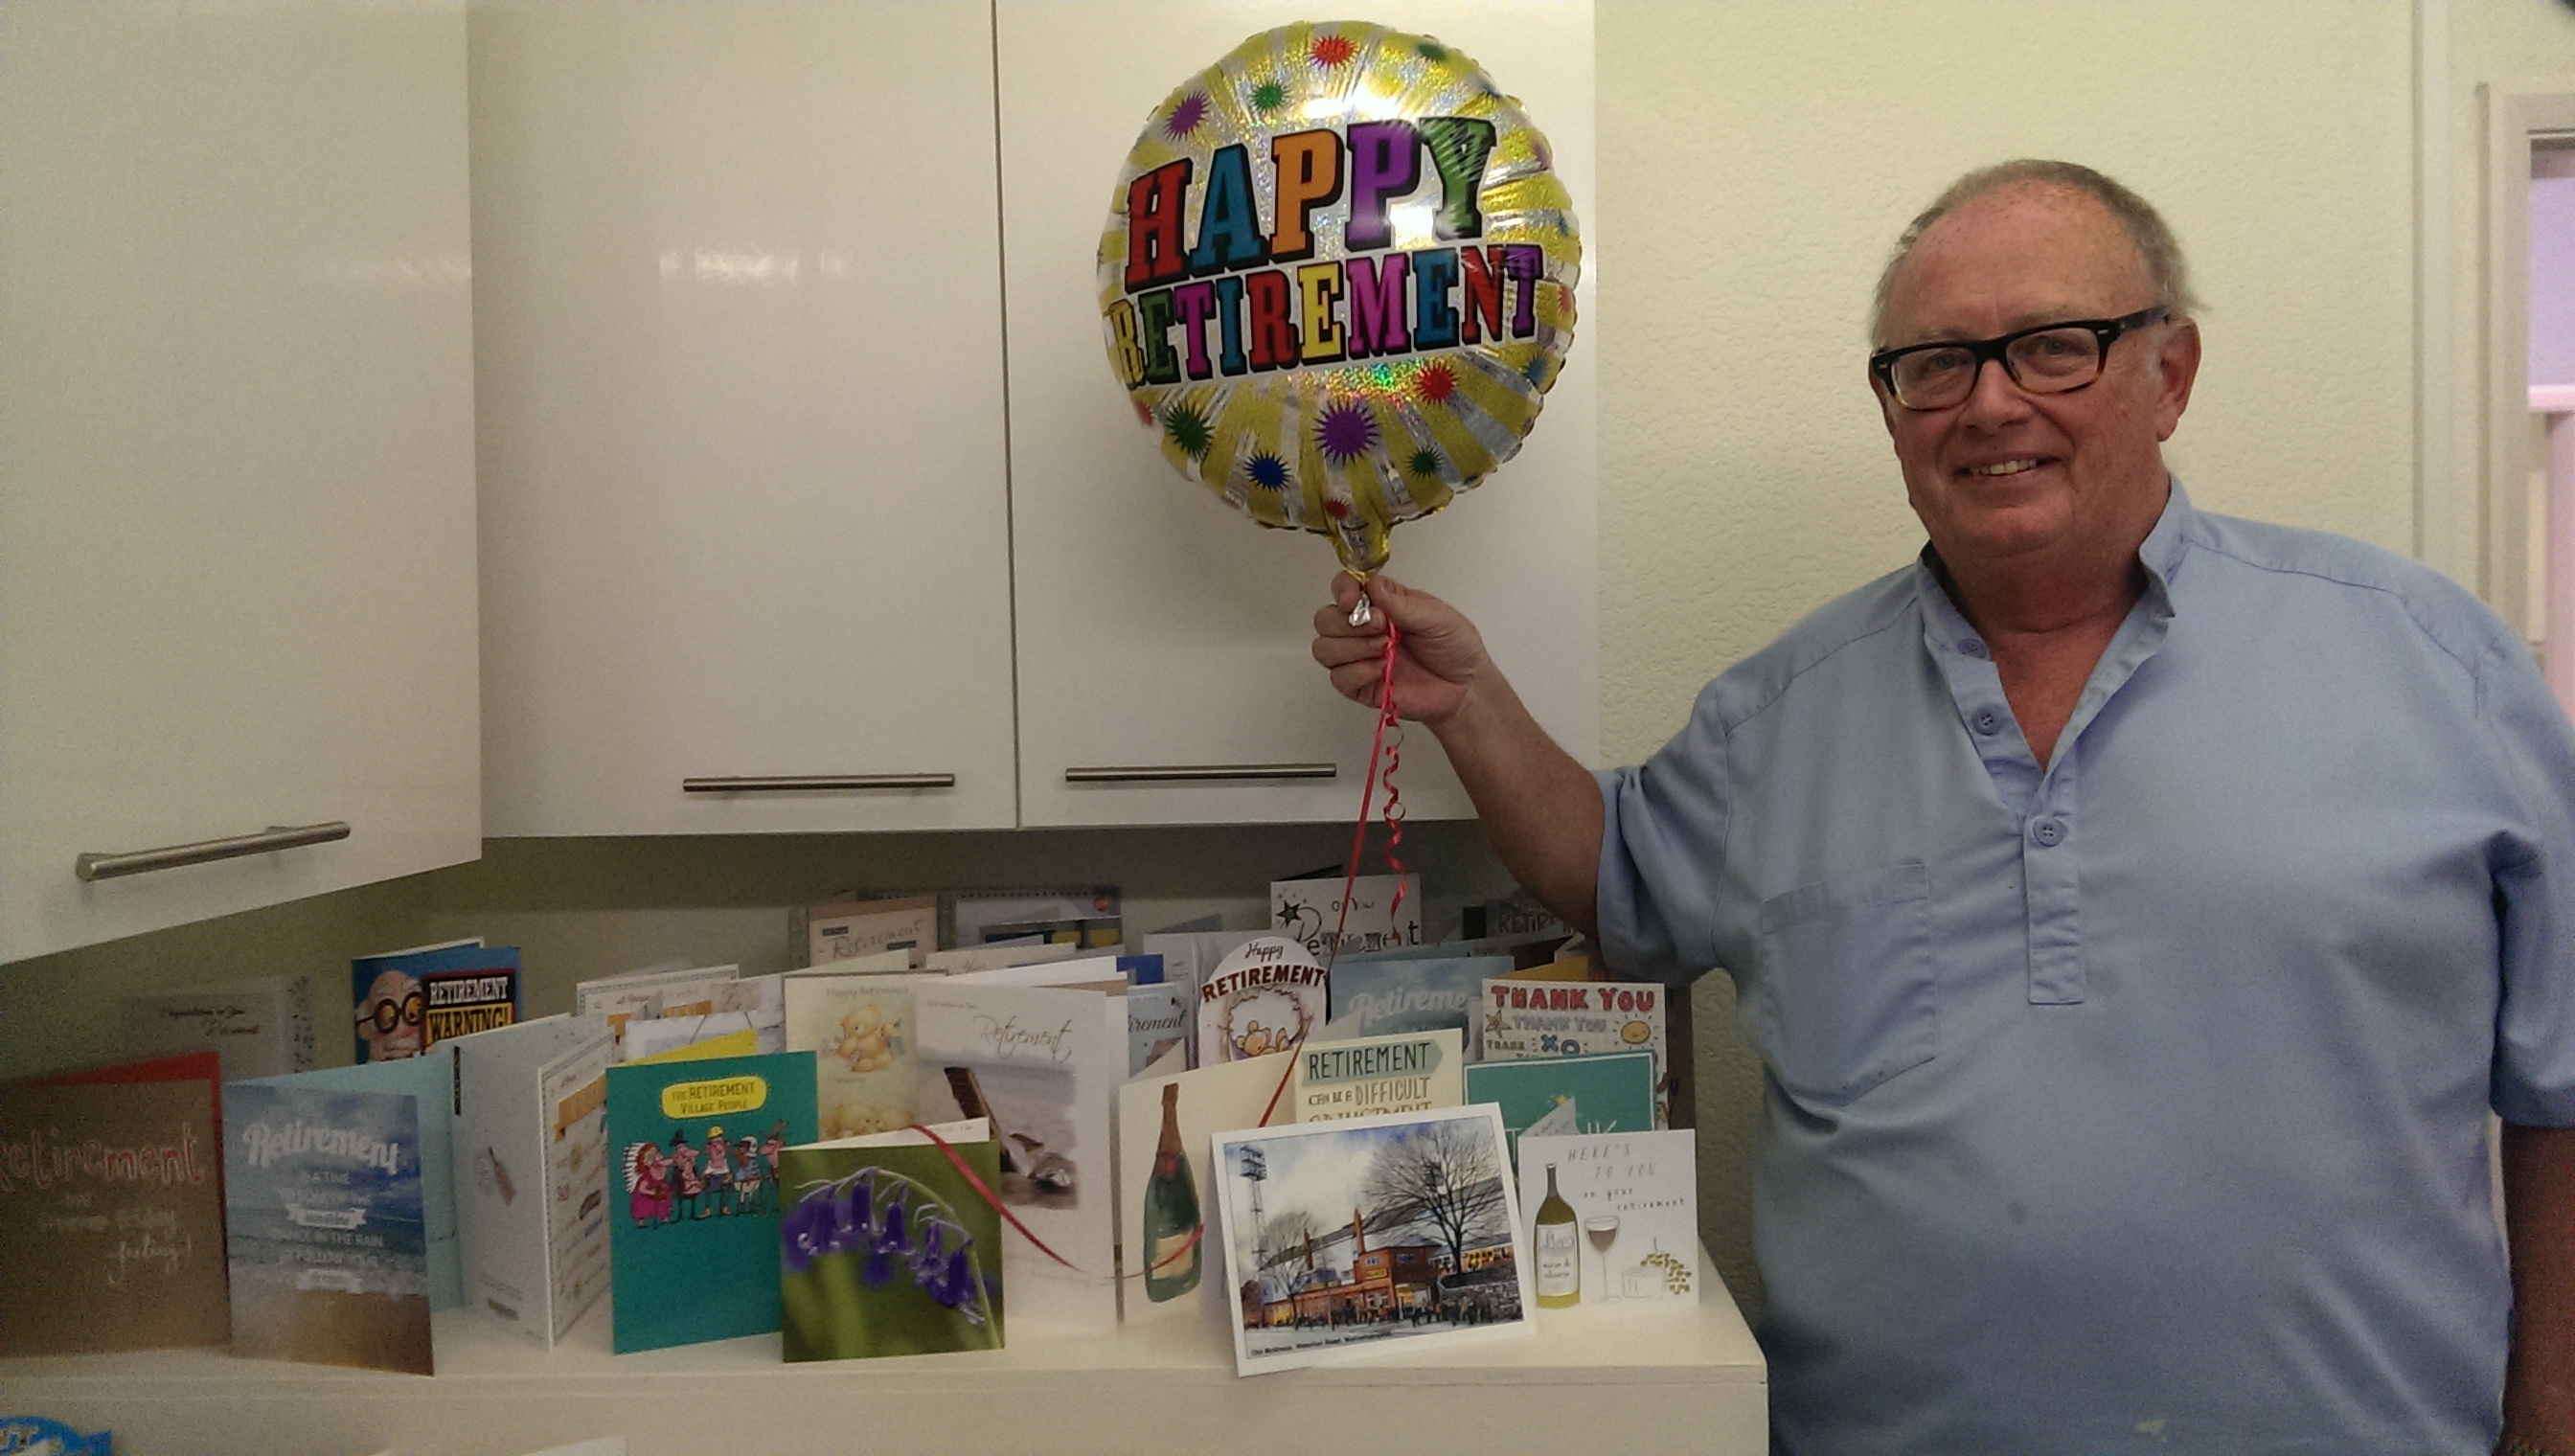 Aldridge Dentist retires